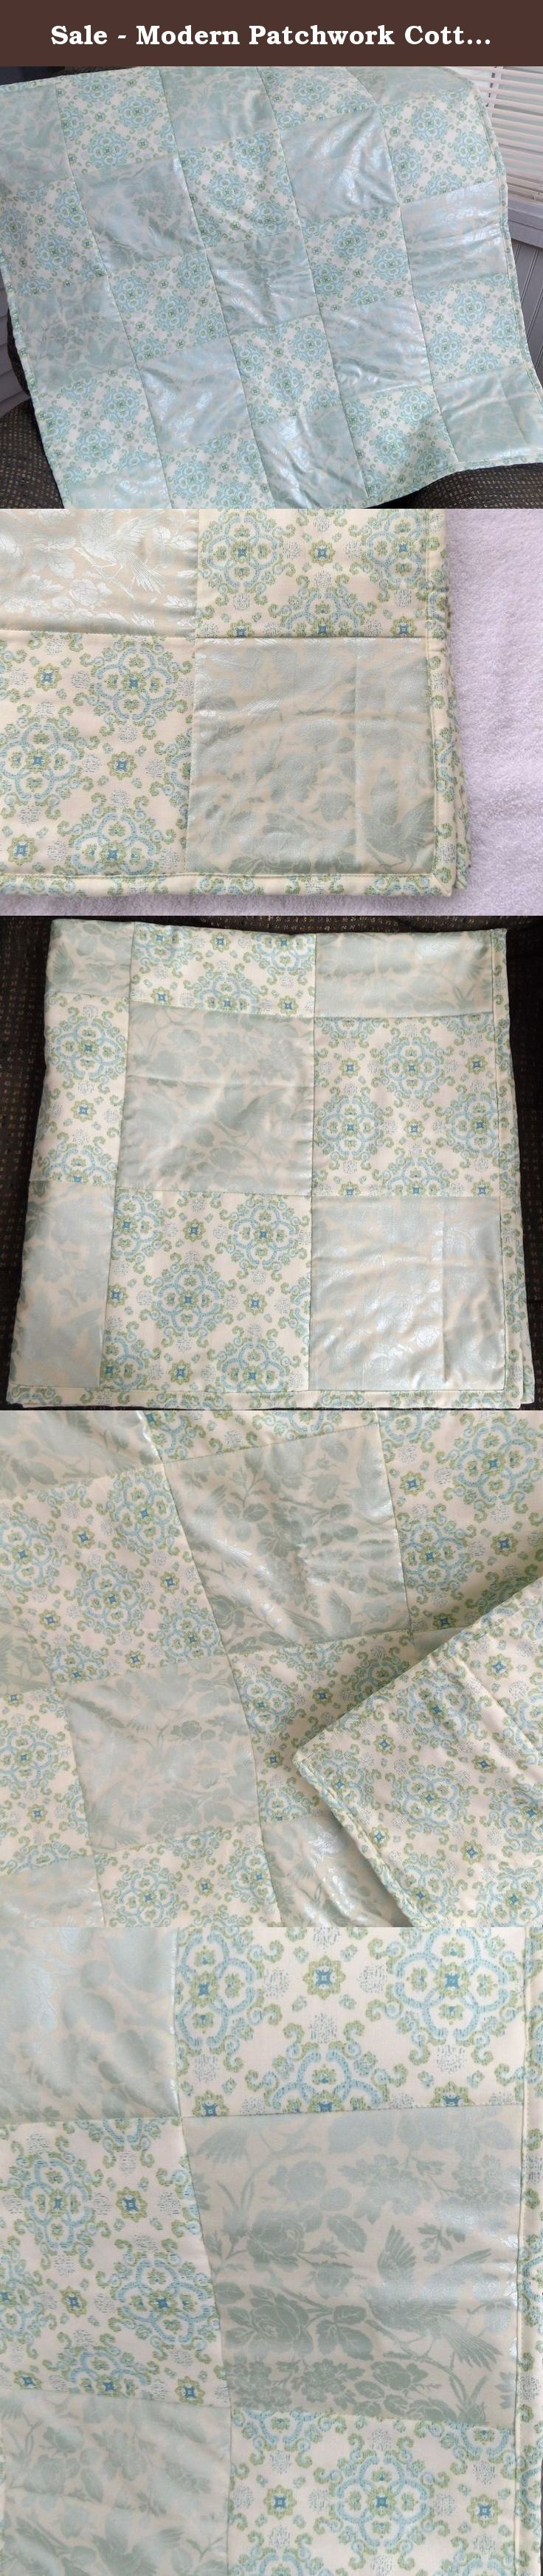 Gonatt crib for sale - Sale Modern Patchwork Cotton Crib Quilt Teal And Ice Blue Designer Baby Quilt